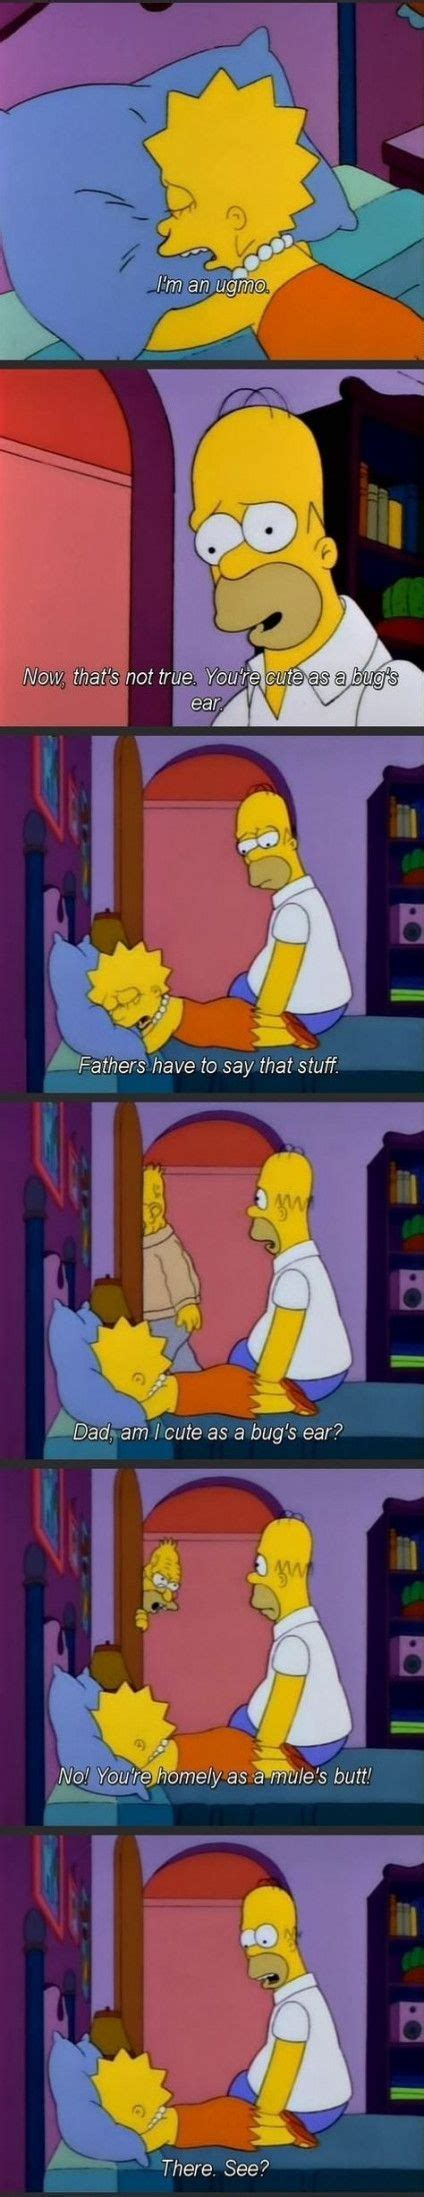 funny relationship images humor  ideas simpsons funny